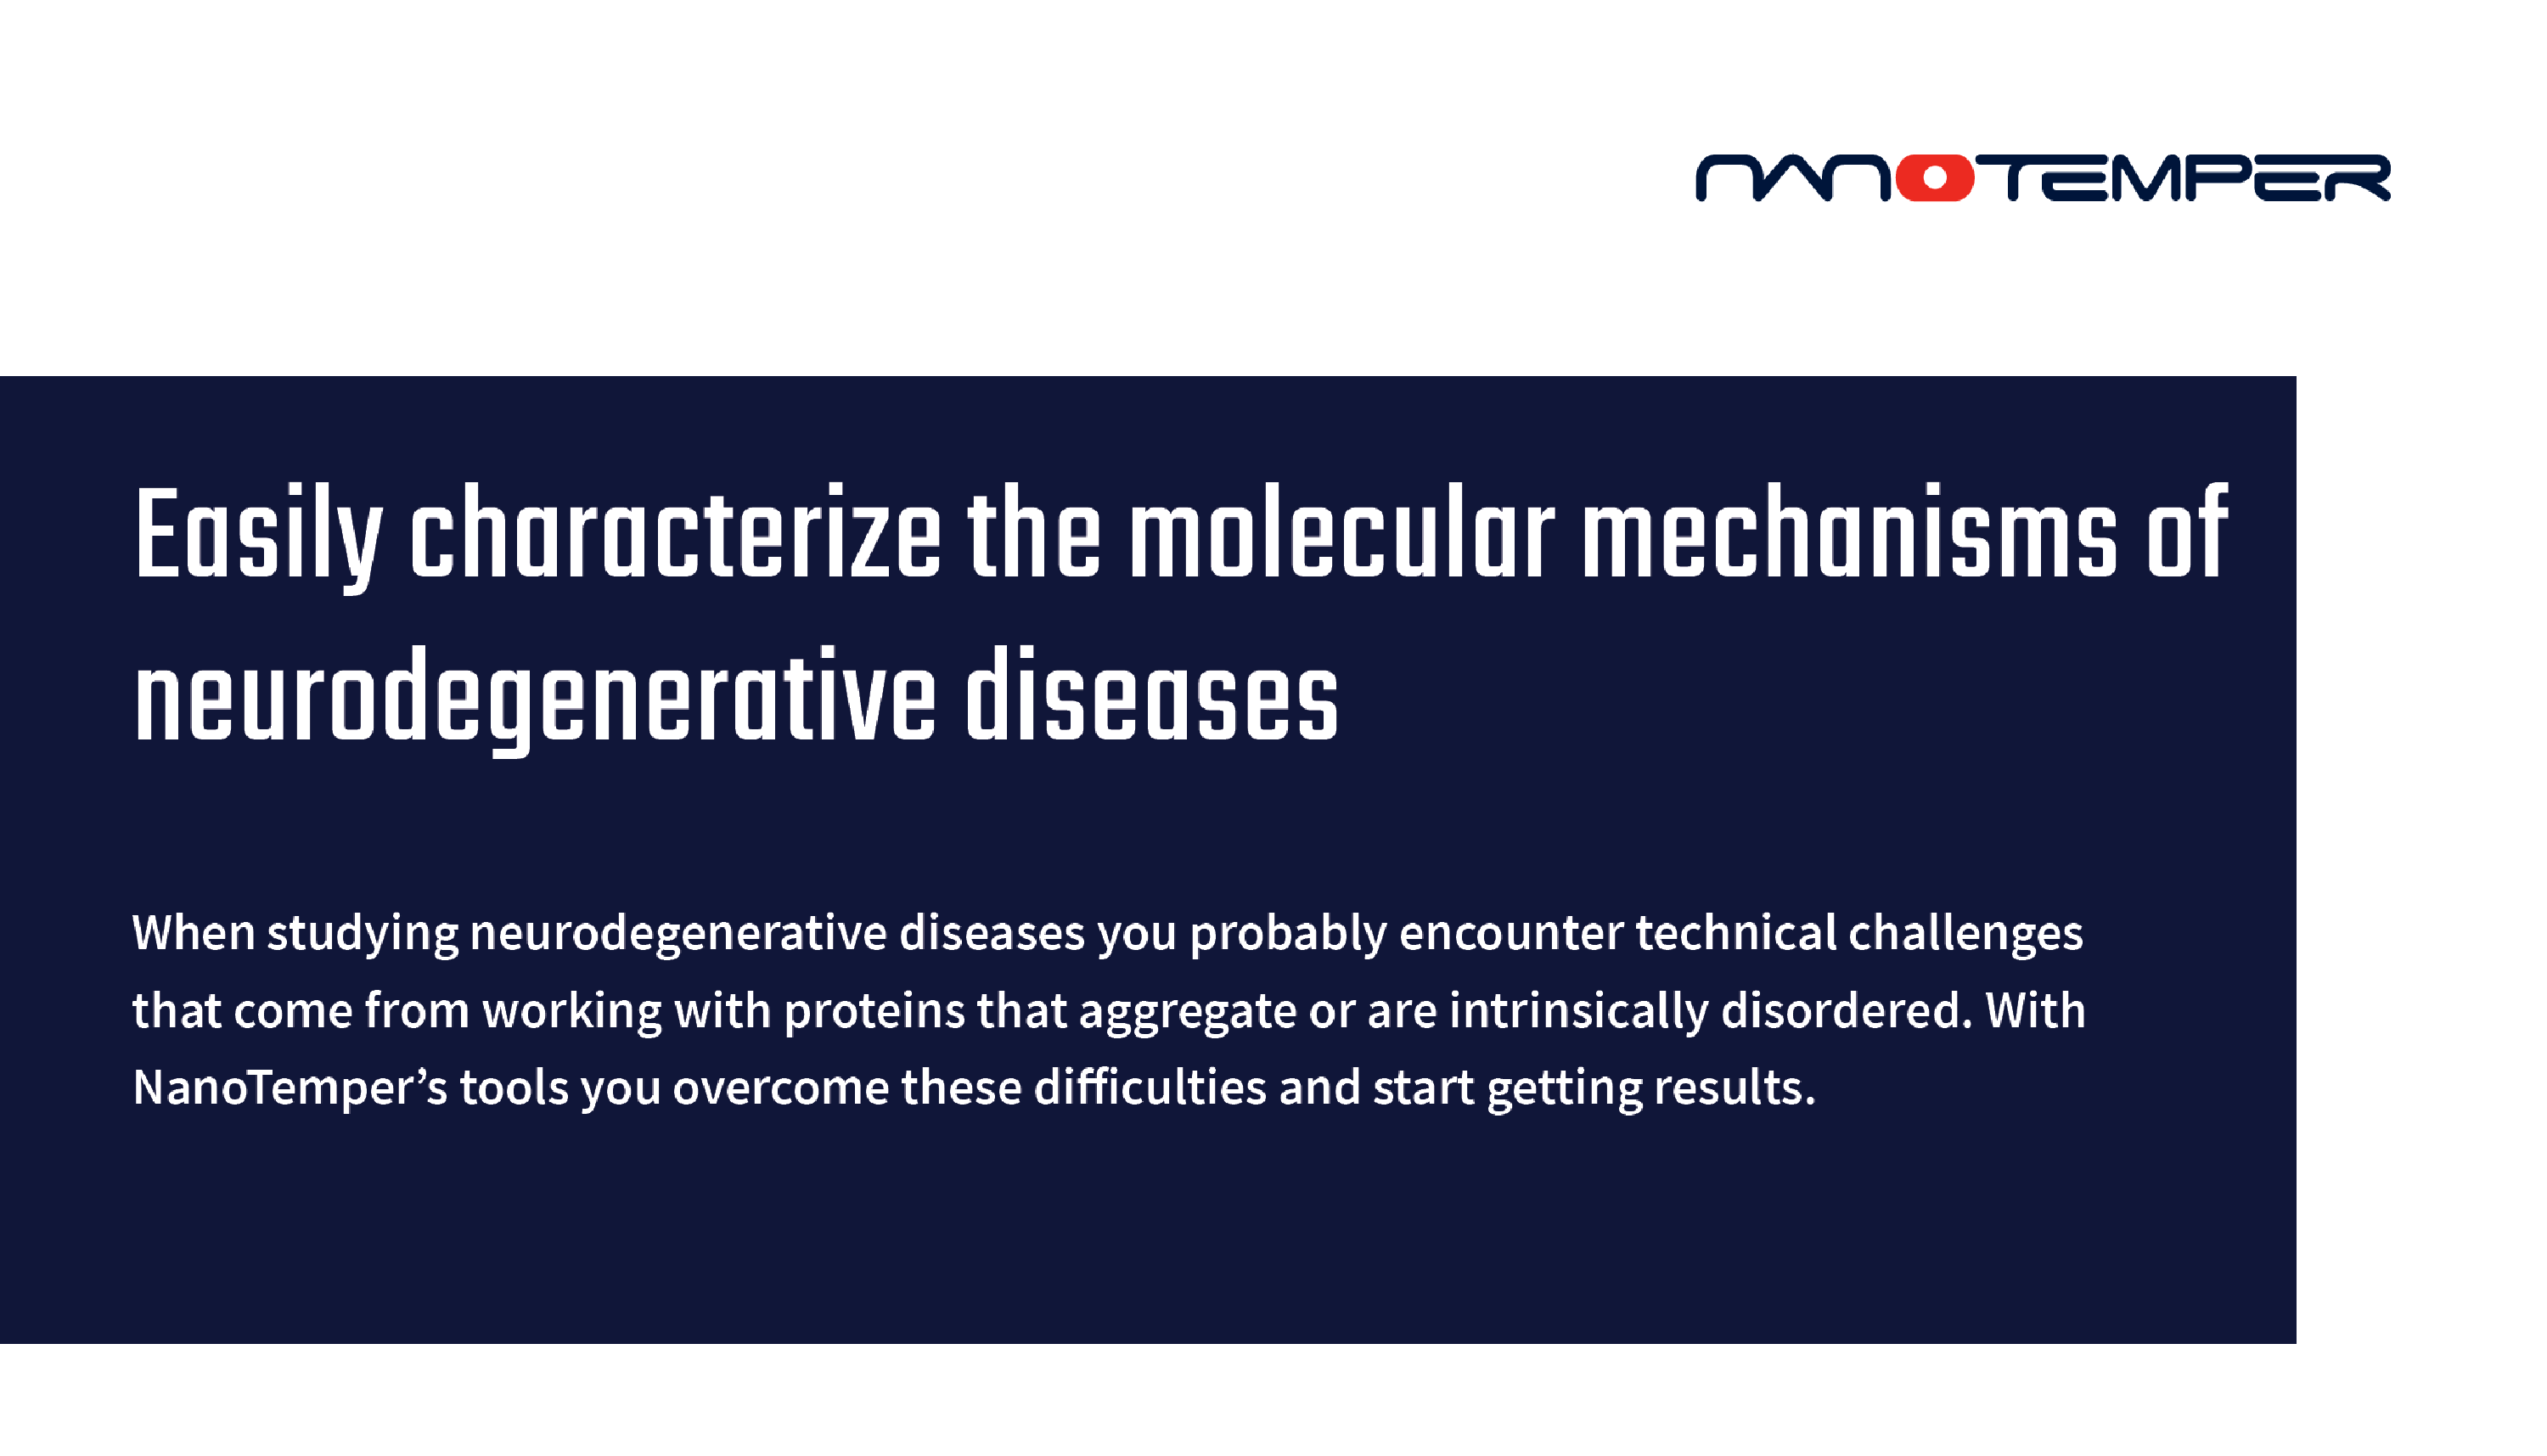 Easily characterize the molecular mechanisms of neurodegenerative diseases